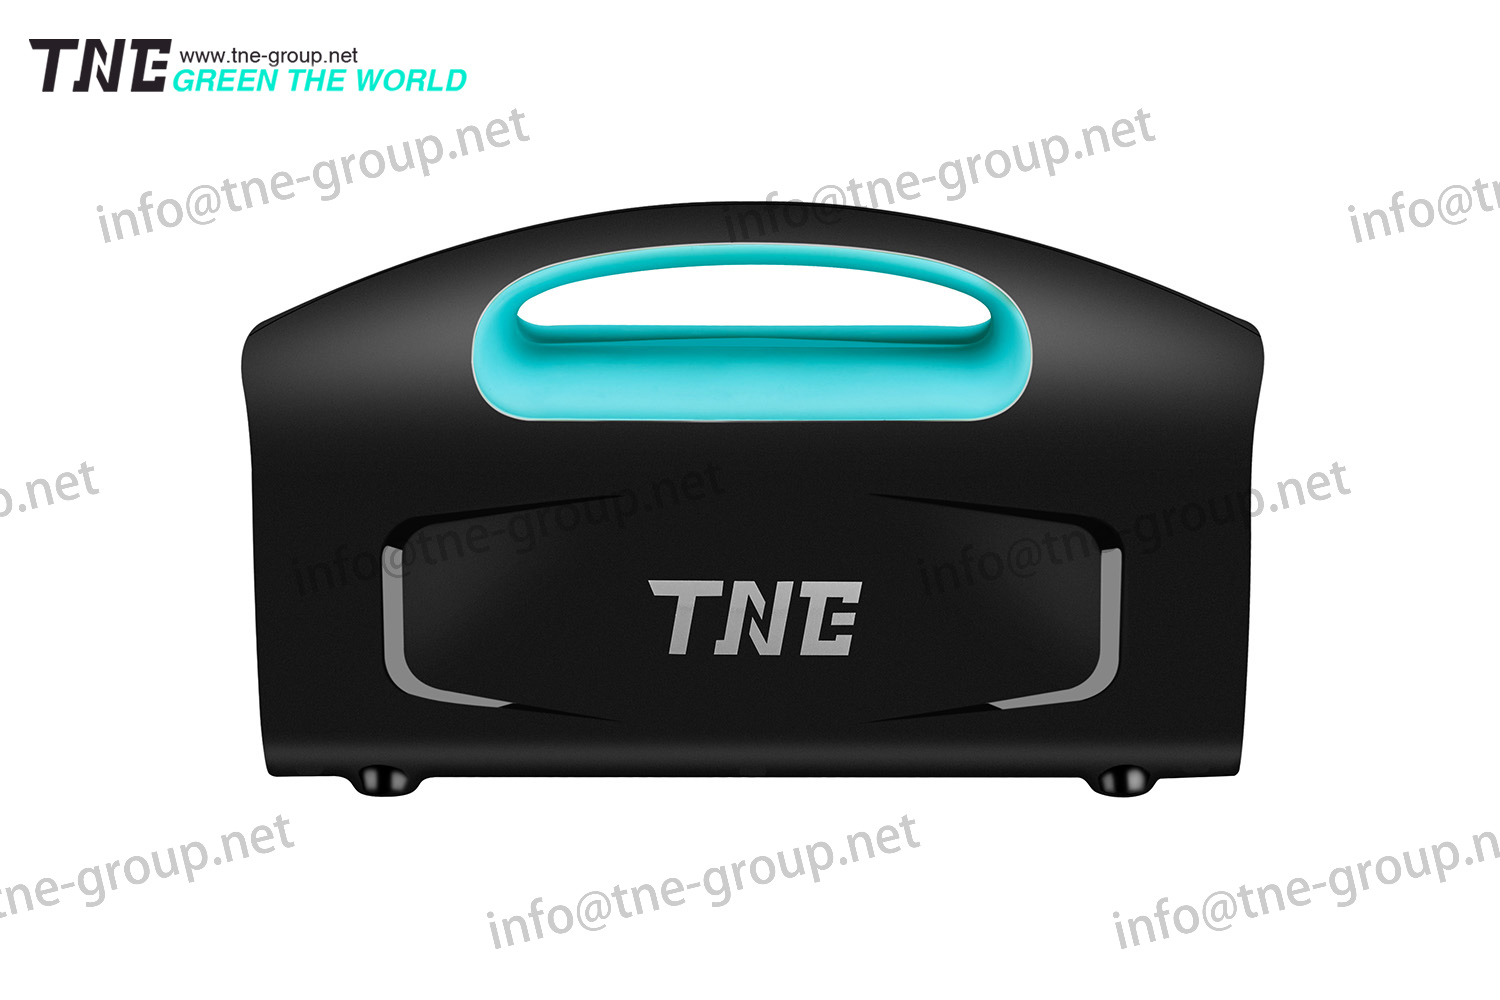 TNE China Branded New 2 in 1 Protable Mini 500va Safe UPS China Branded UPS New 2 in 1 UPS Mini 500